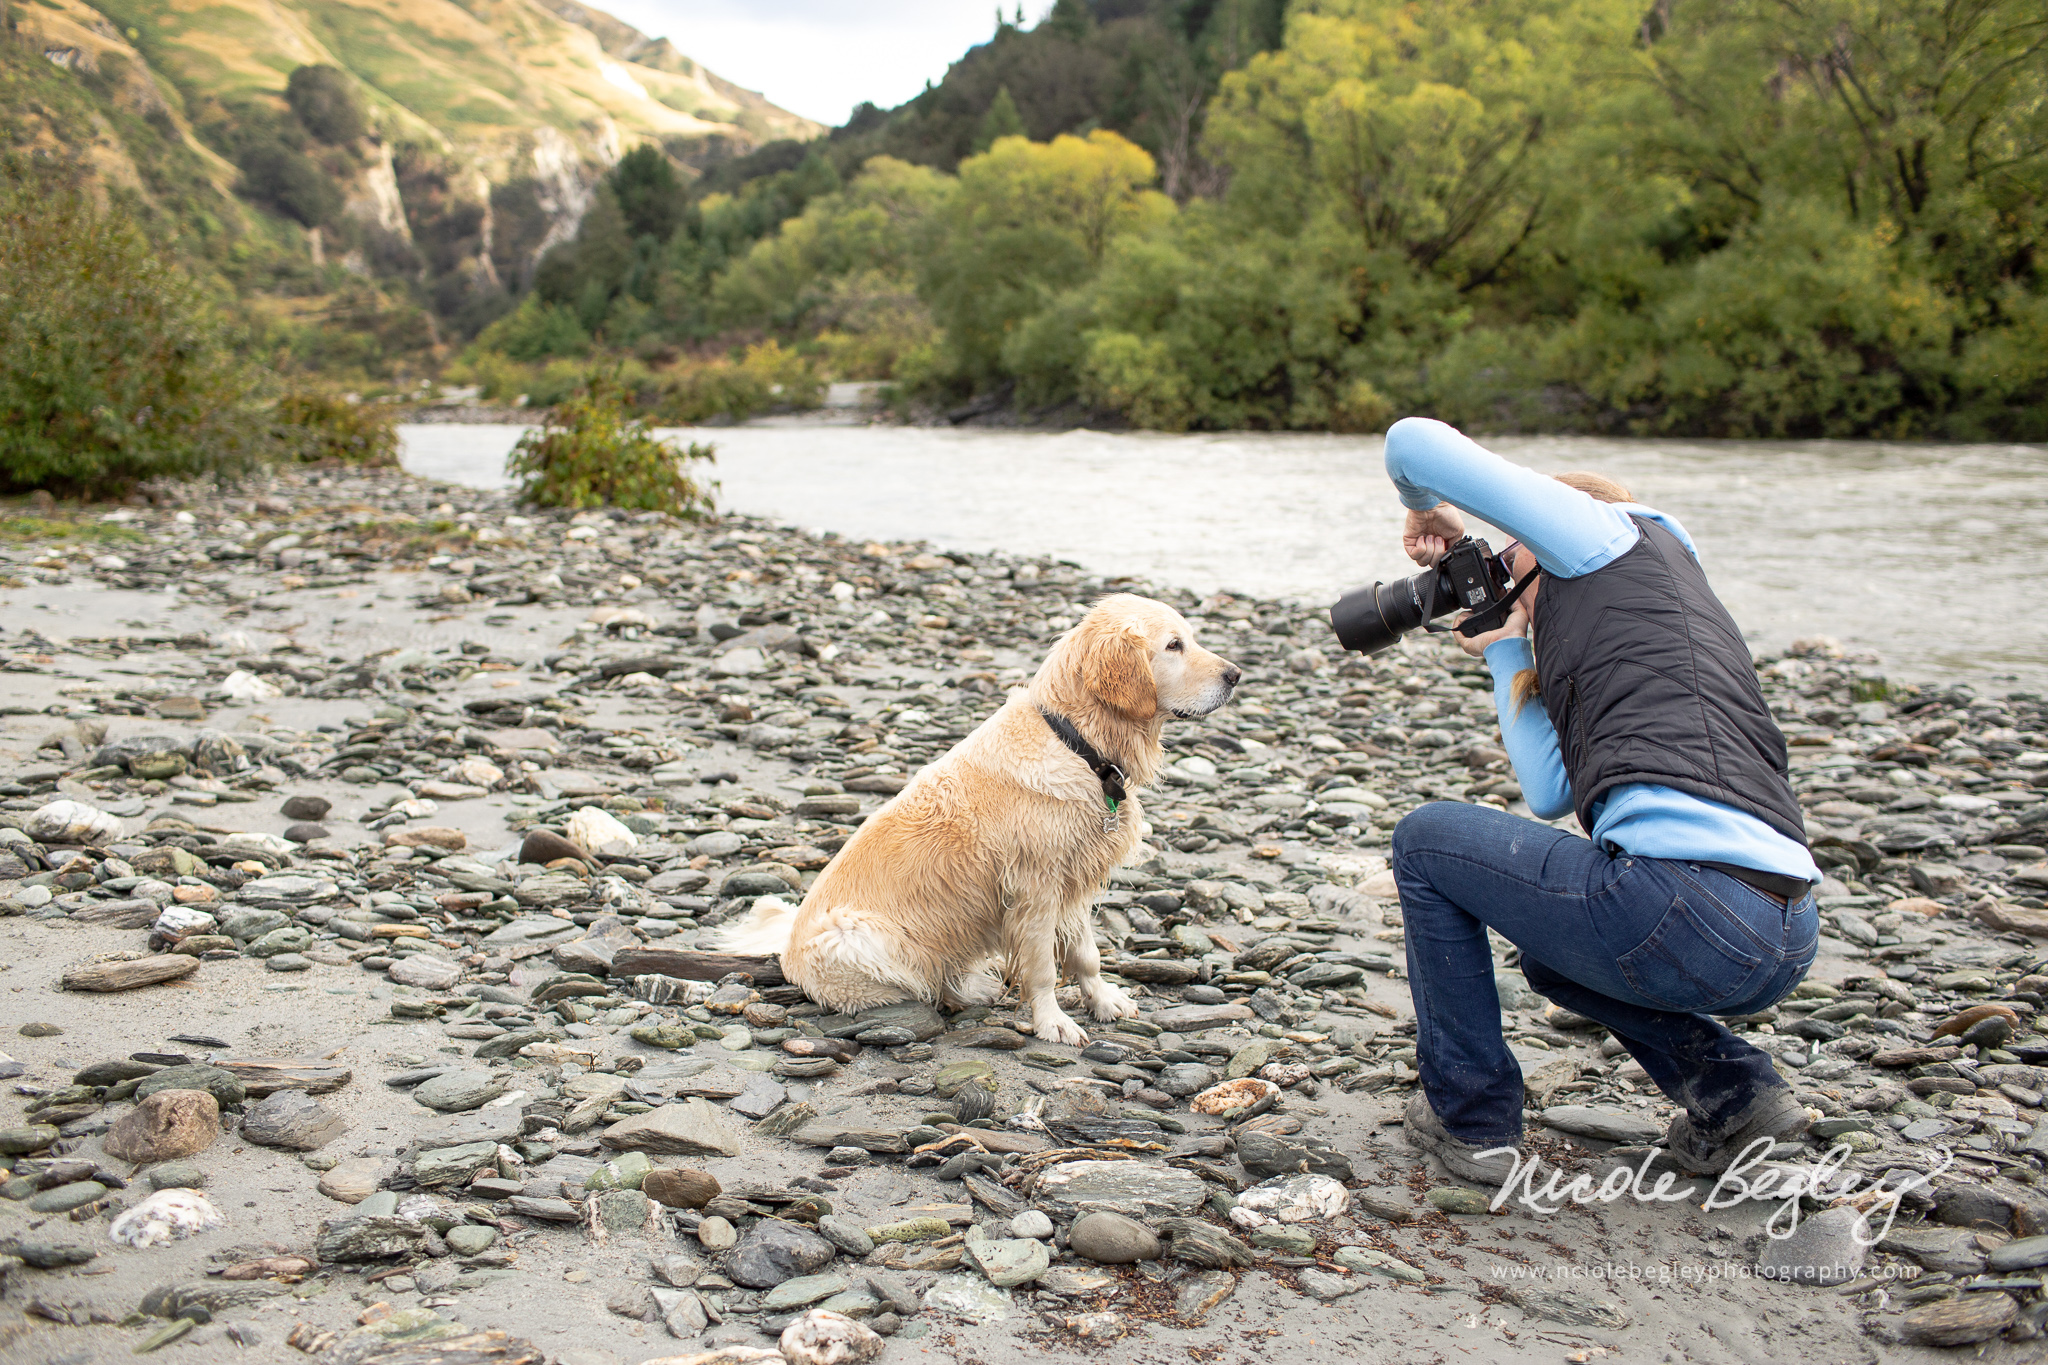 At the Shotover River taking photos of Stell, Image thanks to Nicole Begley. Look right for my resulting image.